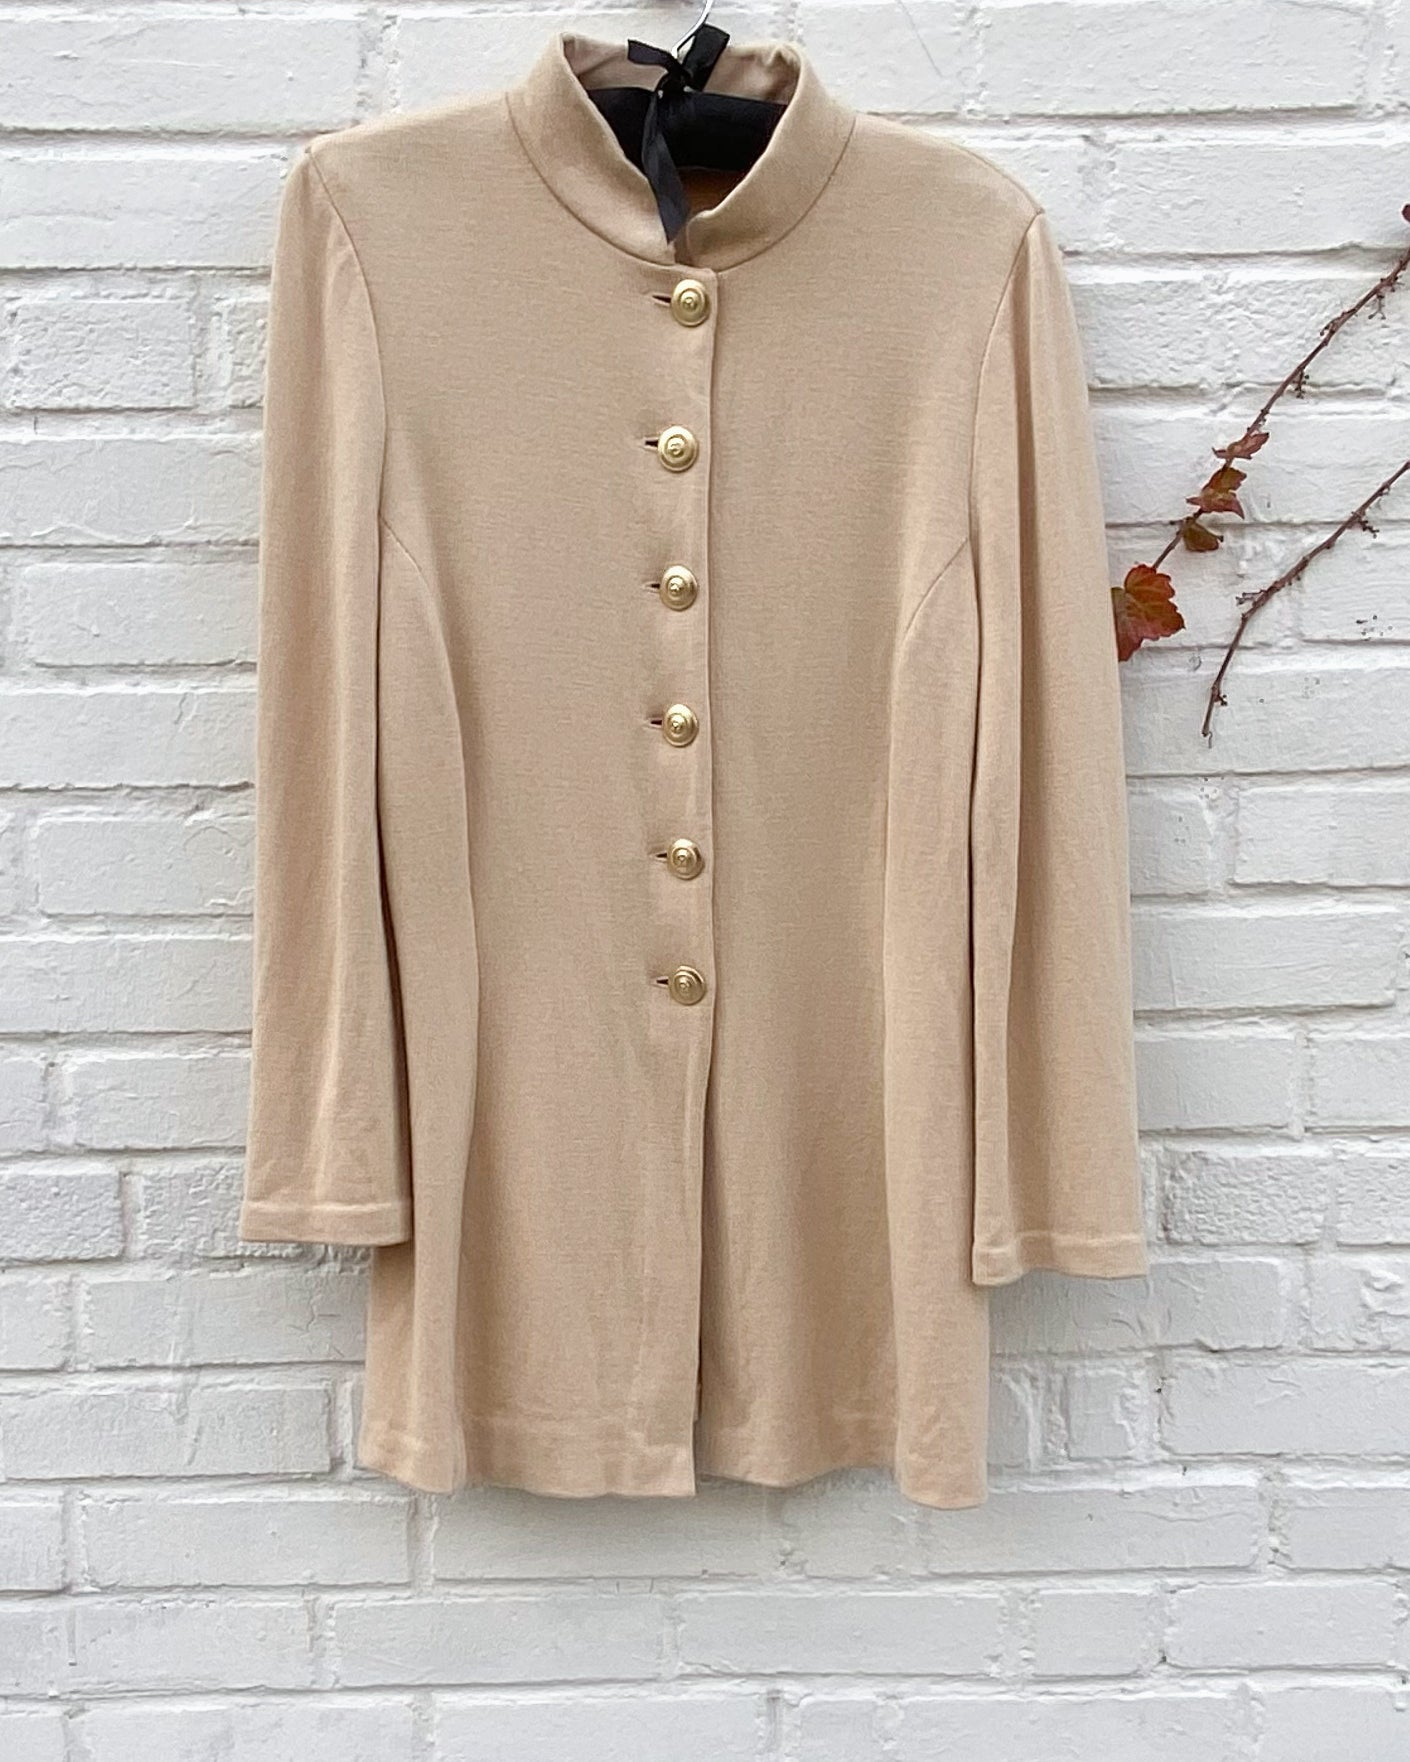 Mao collar Beige  Knit Jacket with Gold bottouns